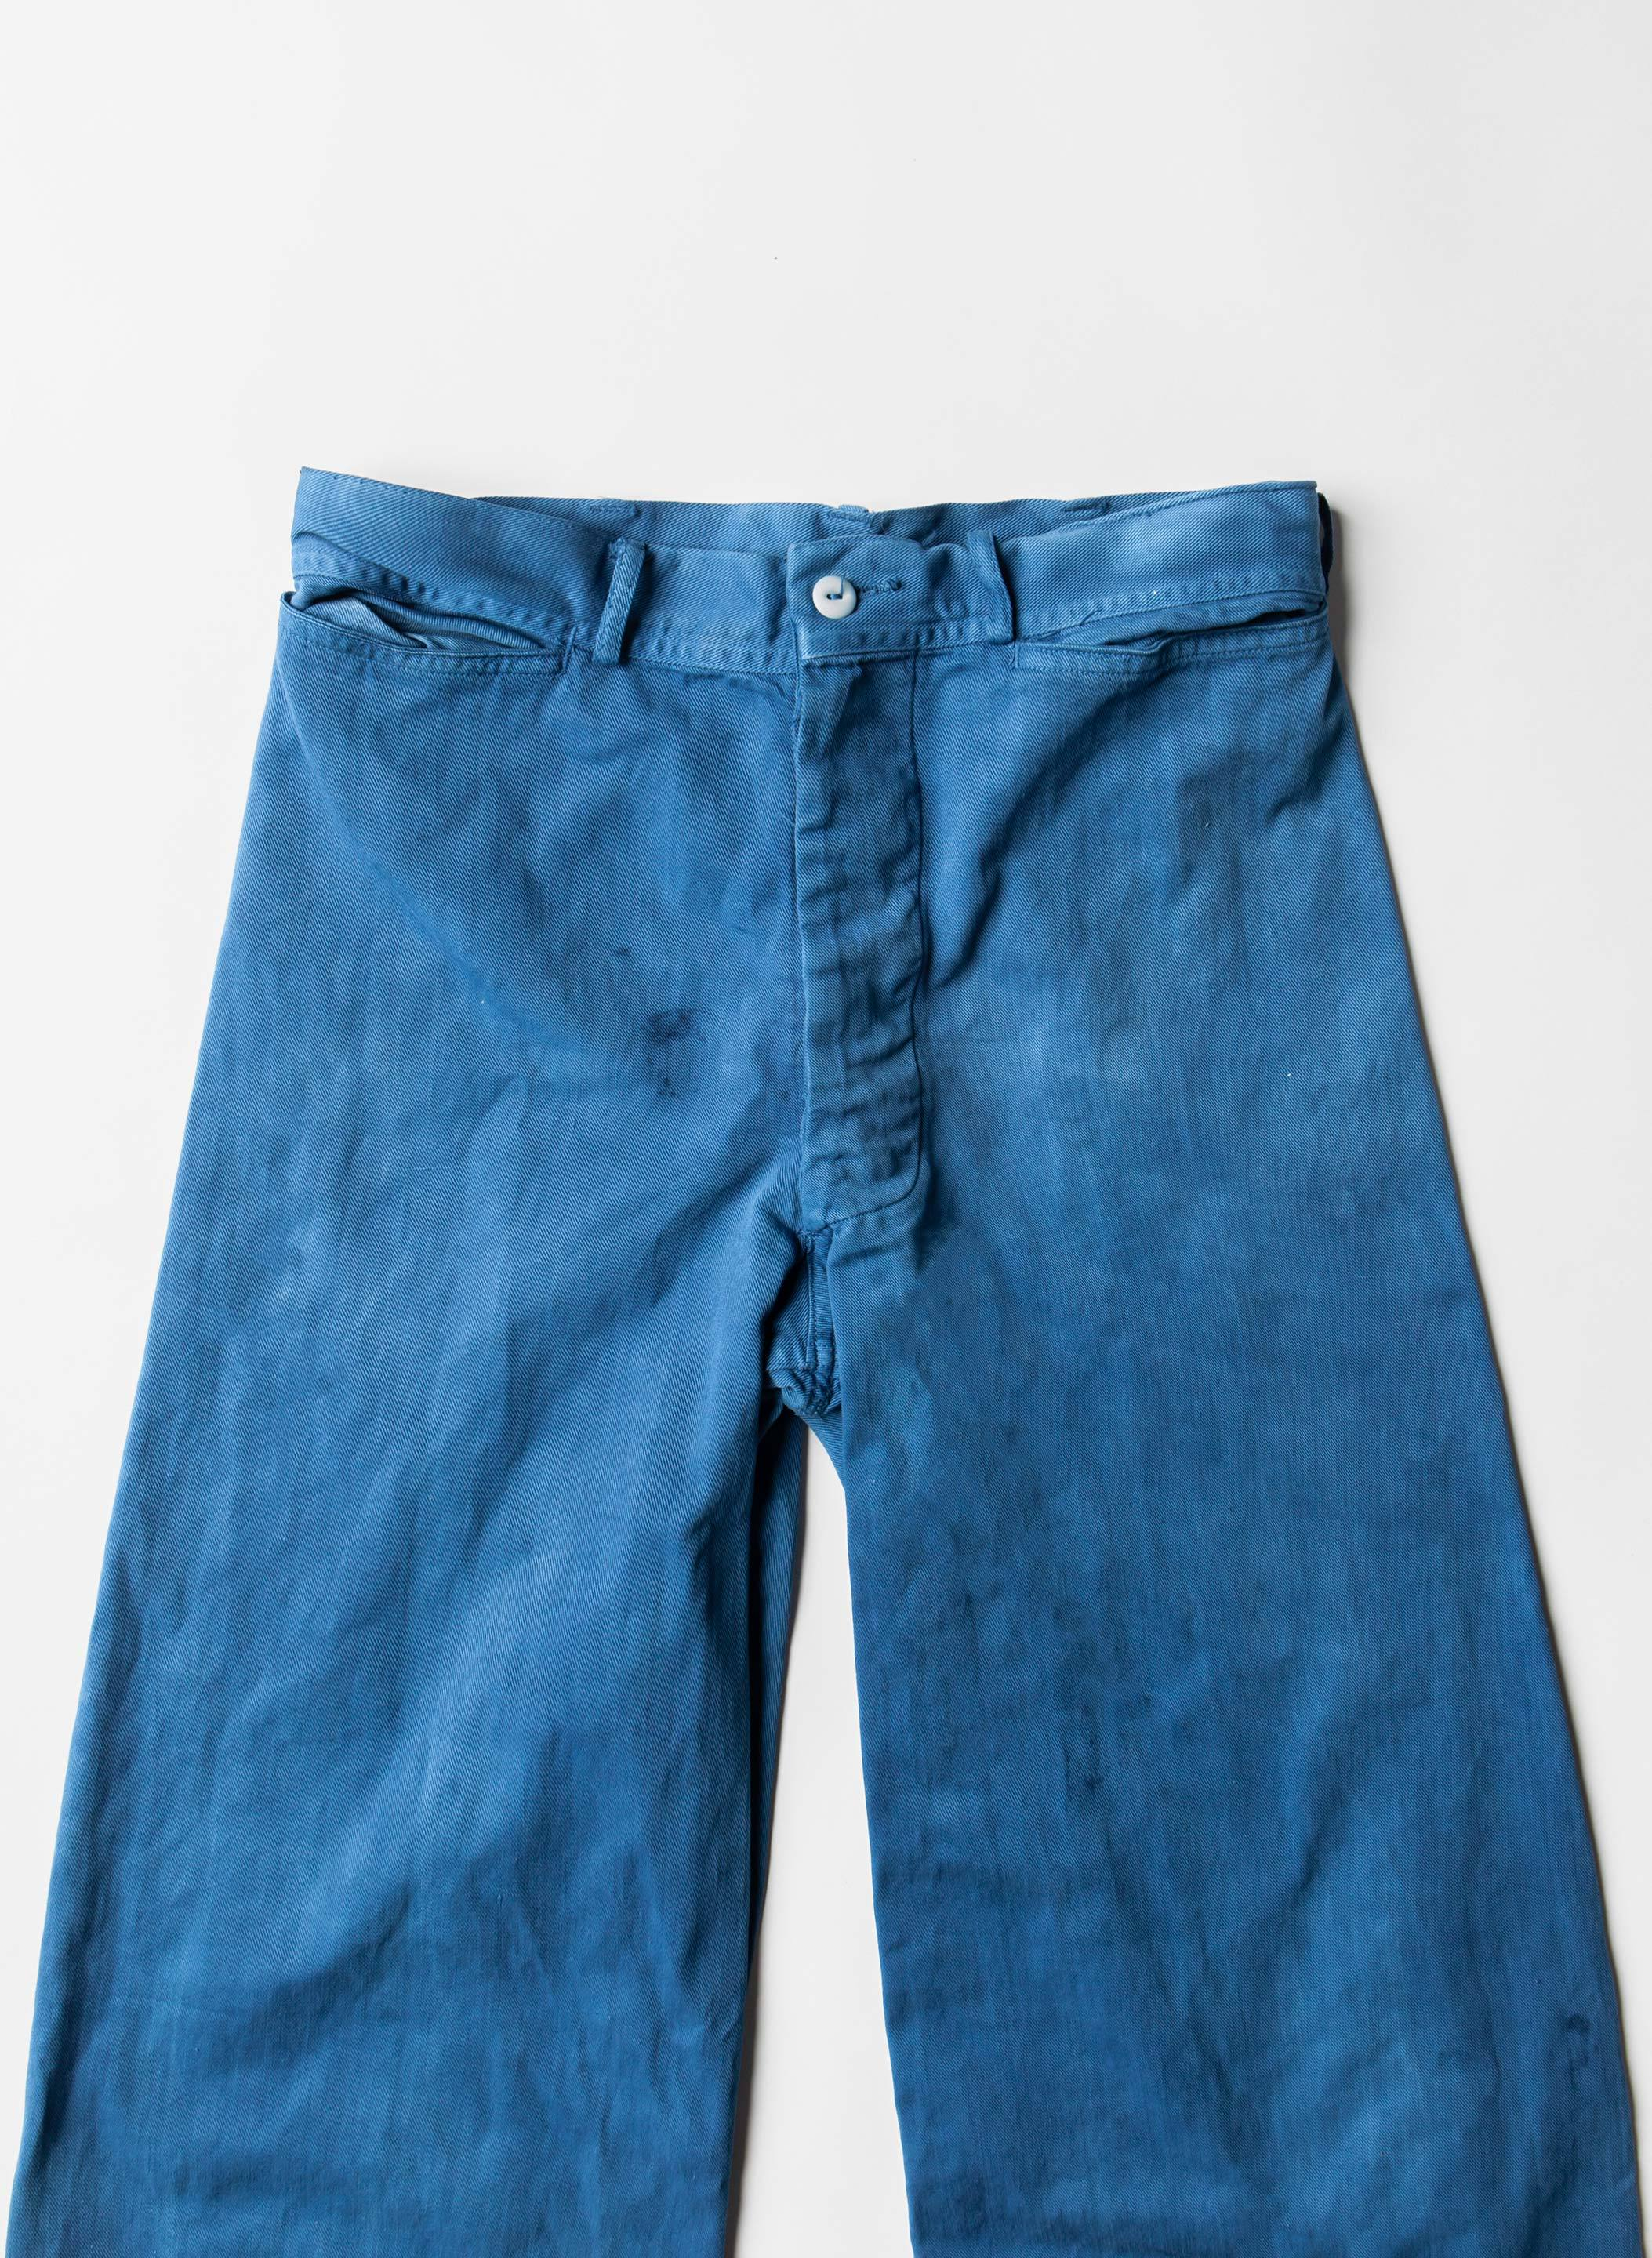 imogene + willie - indigo dyed sailor pants